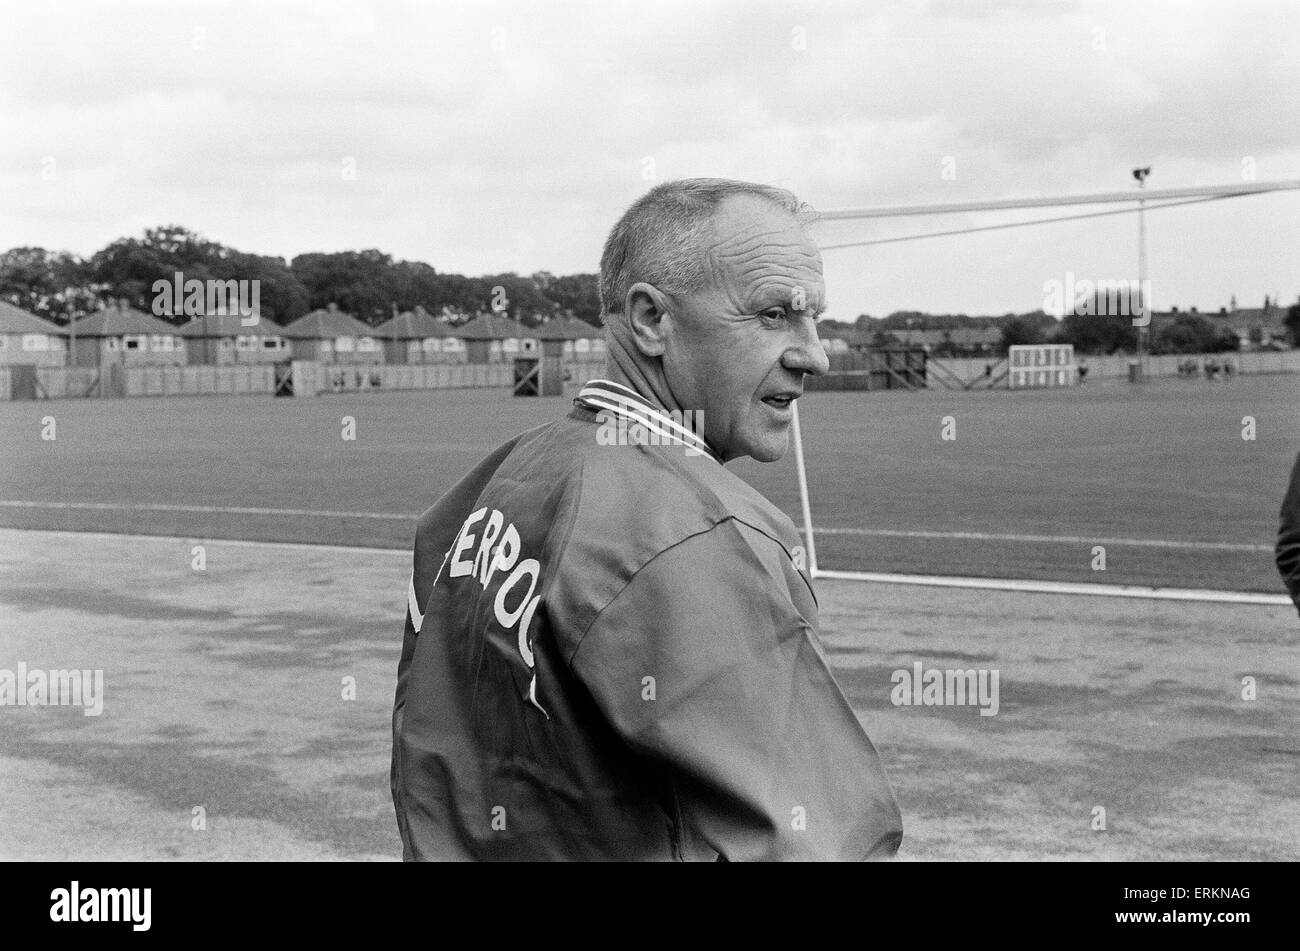 Liverpool manager Bill Shankly takes charge of a training session as the team are recalled for preseason training - Stock Image